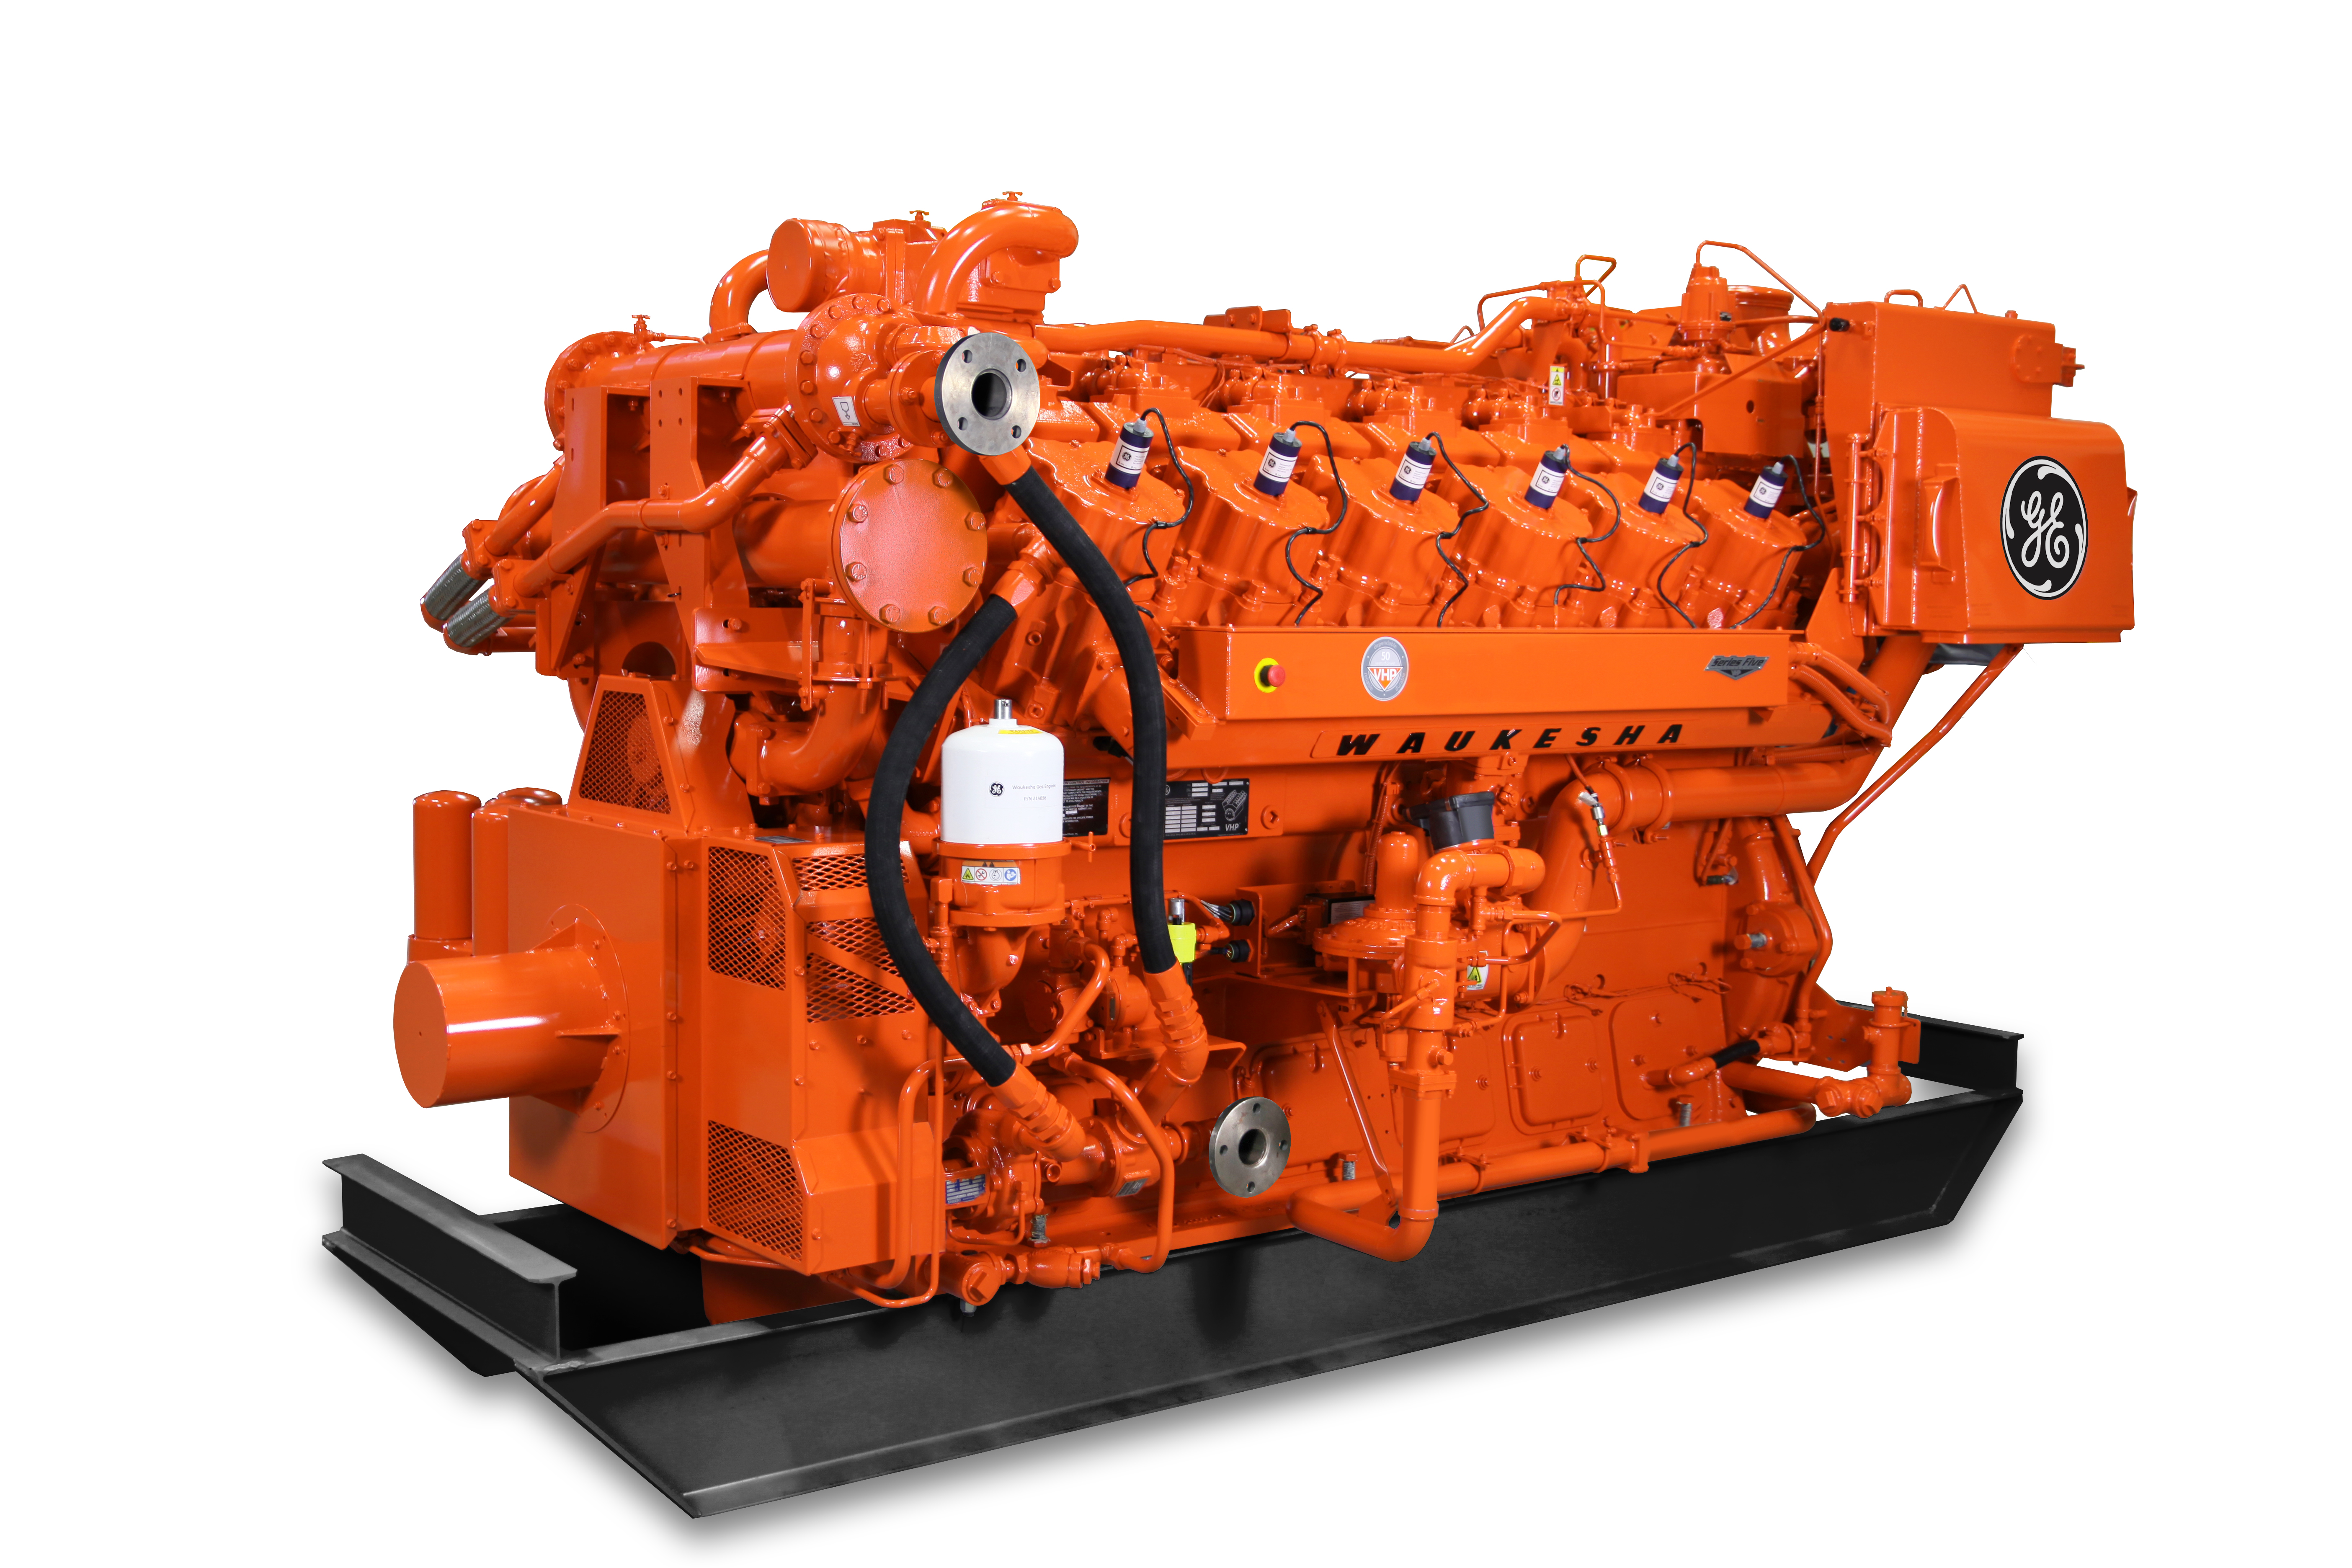 GE's Distributed Power Signs New Waukesha Distributor in Nigeria